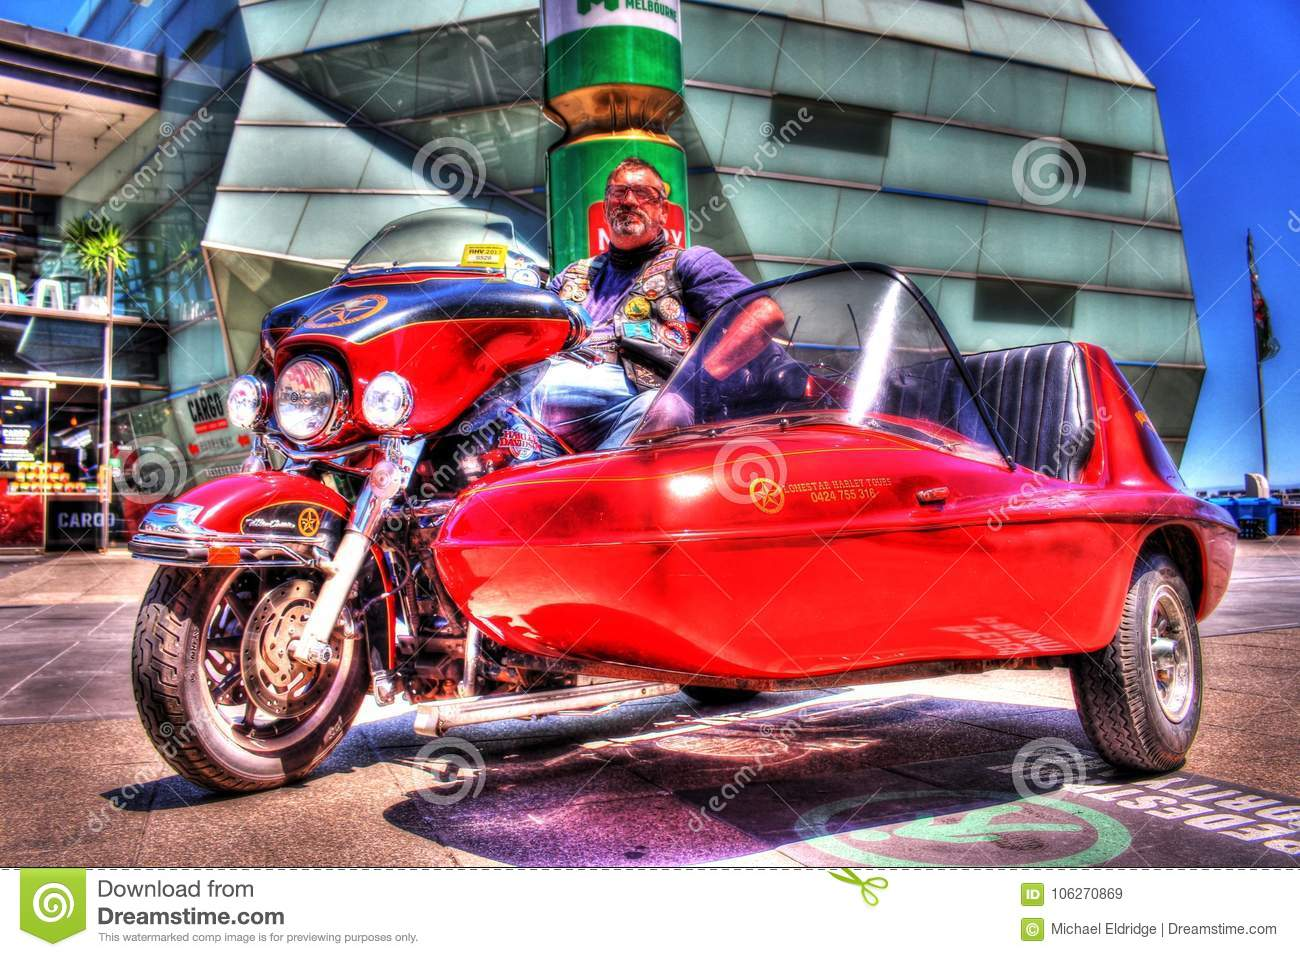 Classic American Harley Davidson Motorcycle And Sidecar With